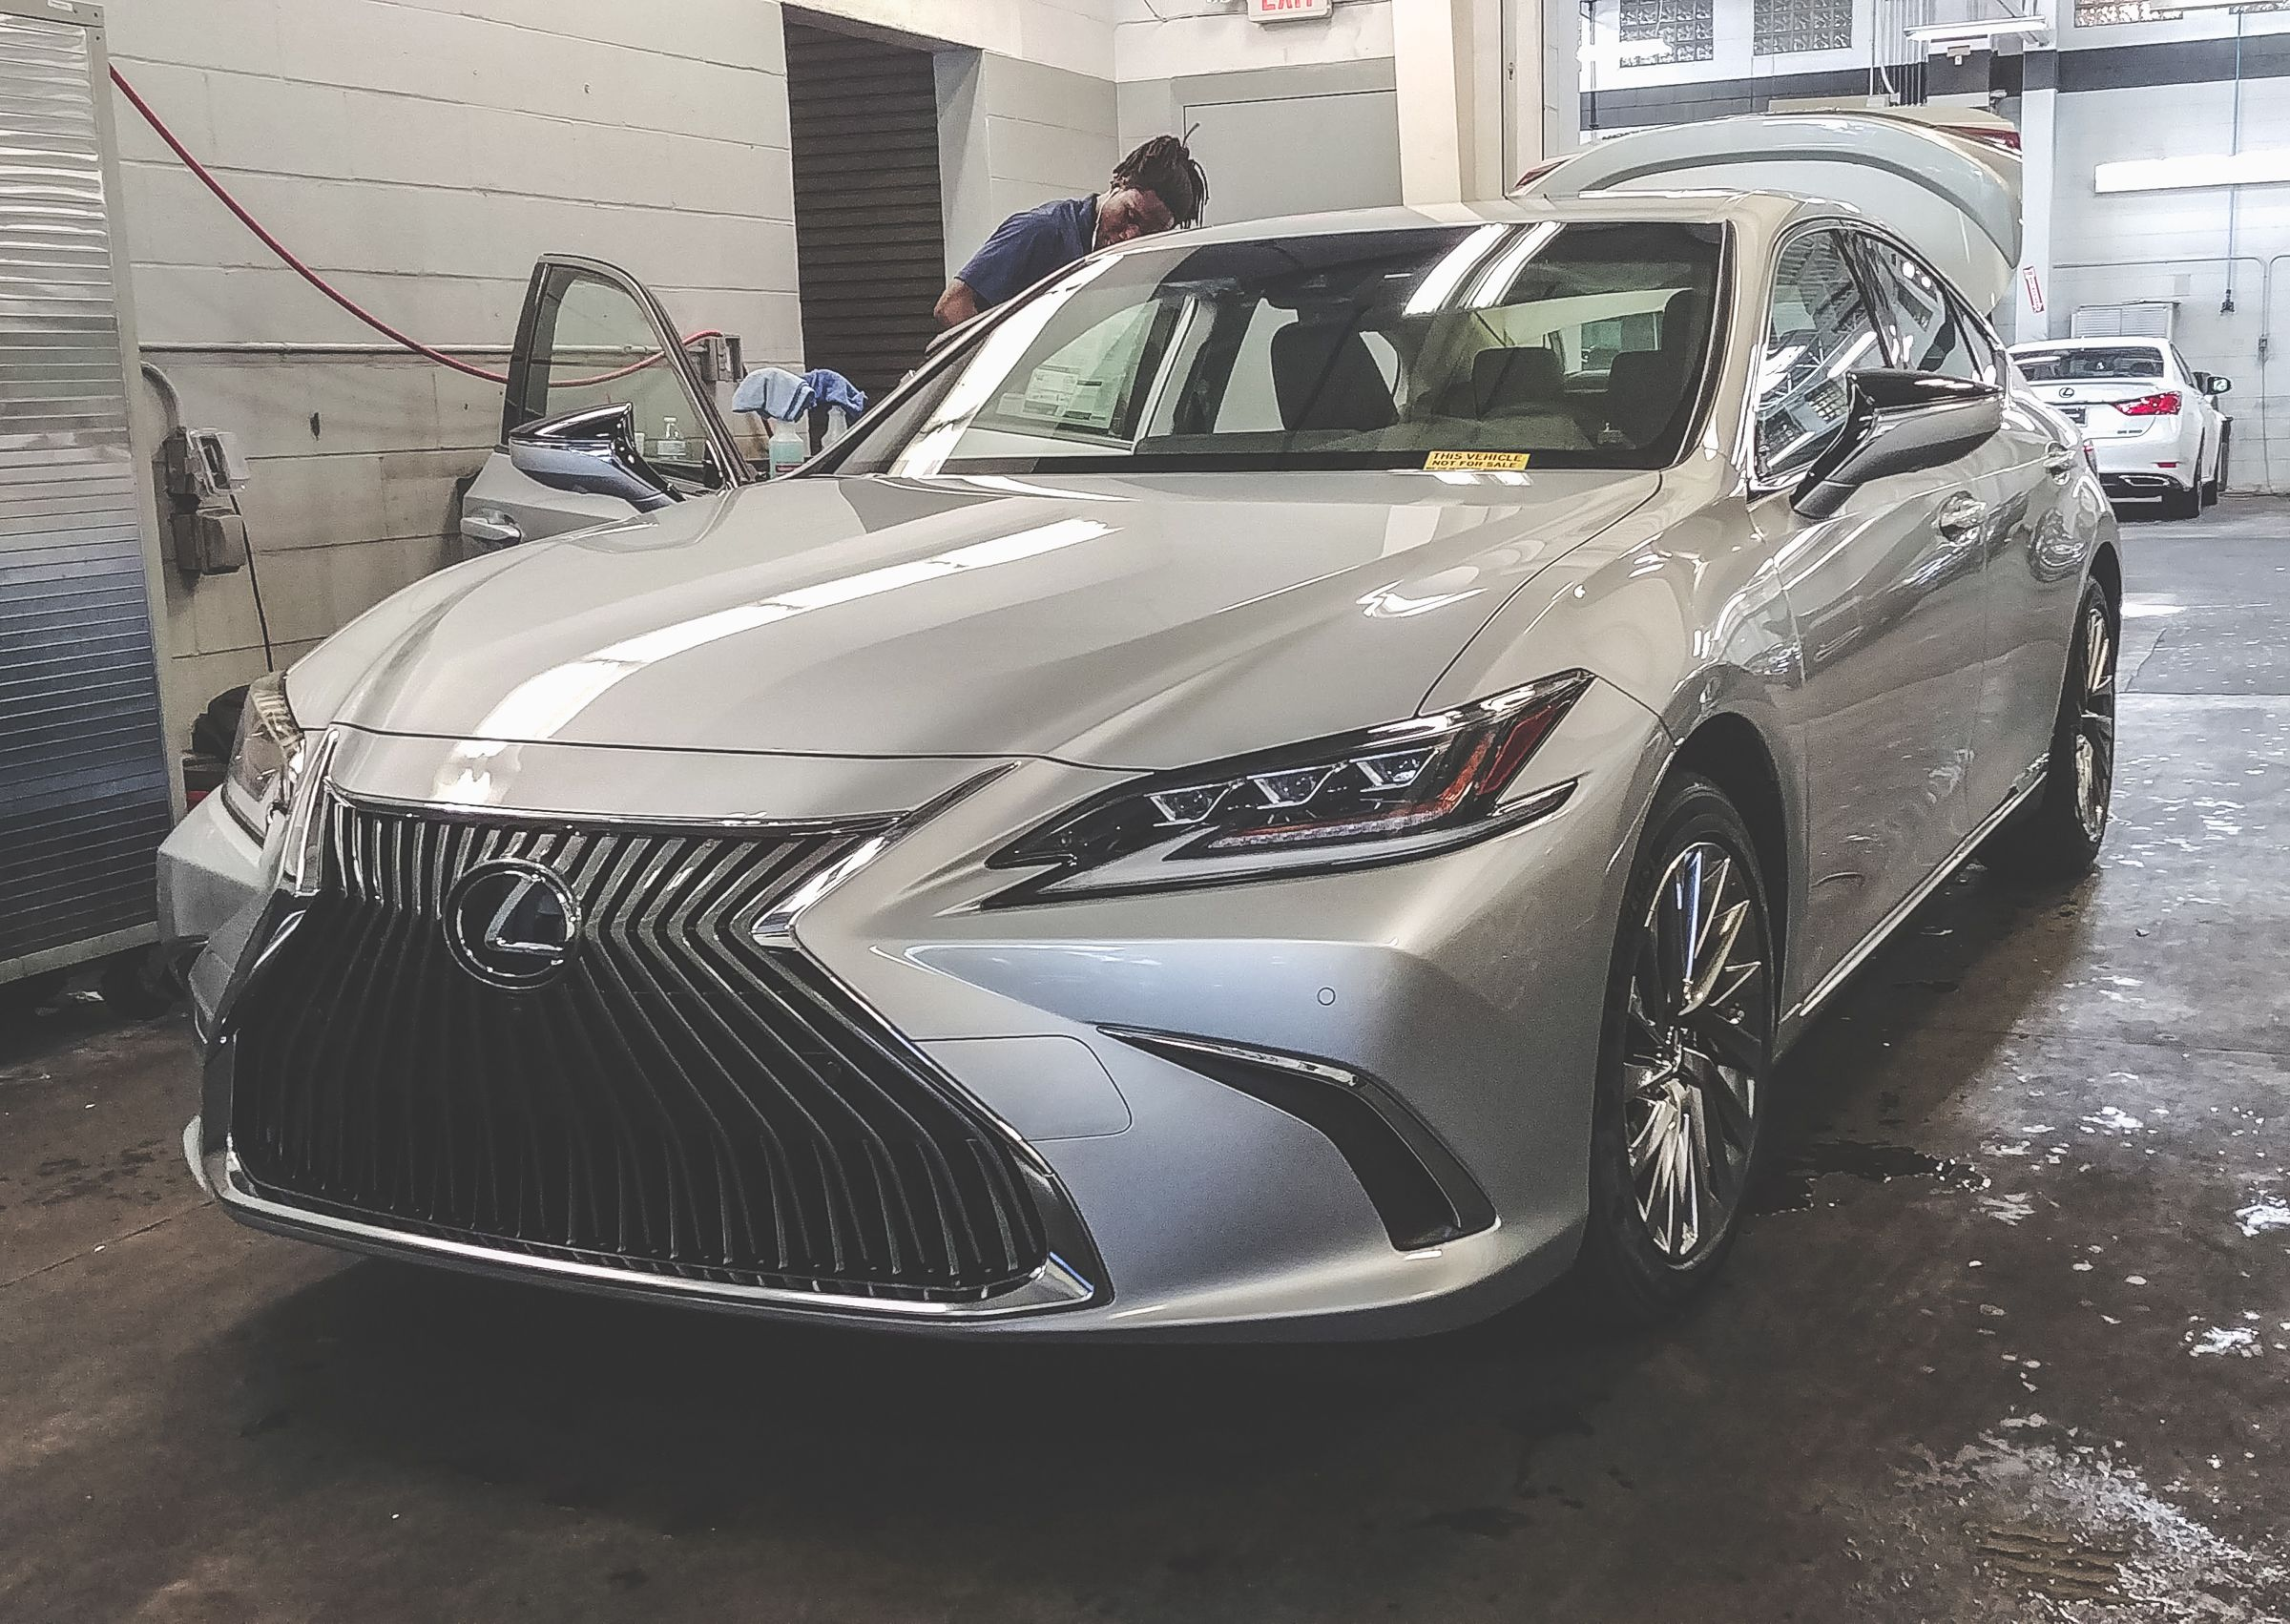 our first new fully re-designed 2019 #lexus #es model has arrived